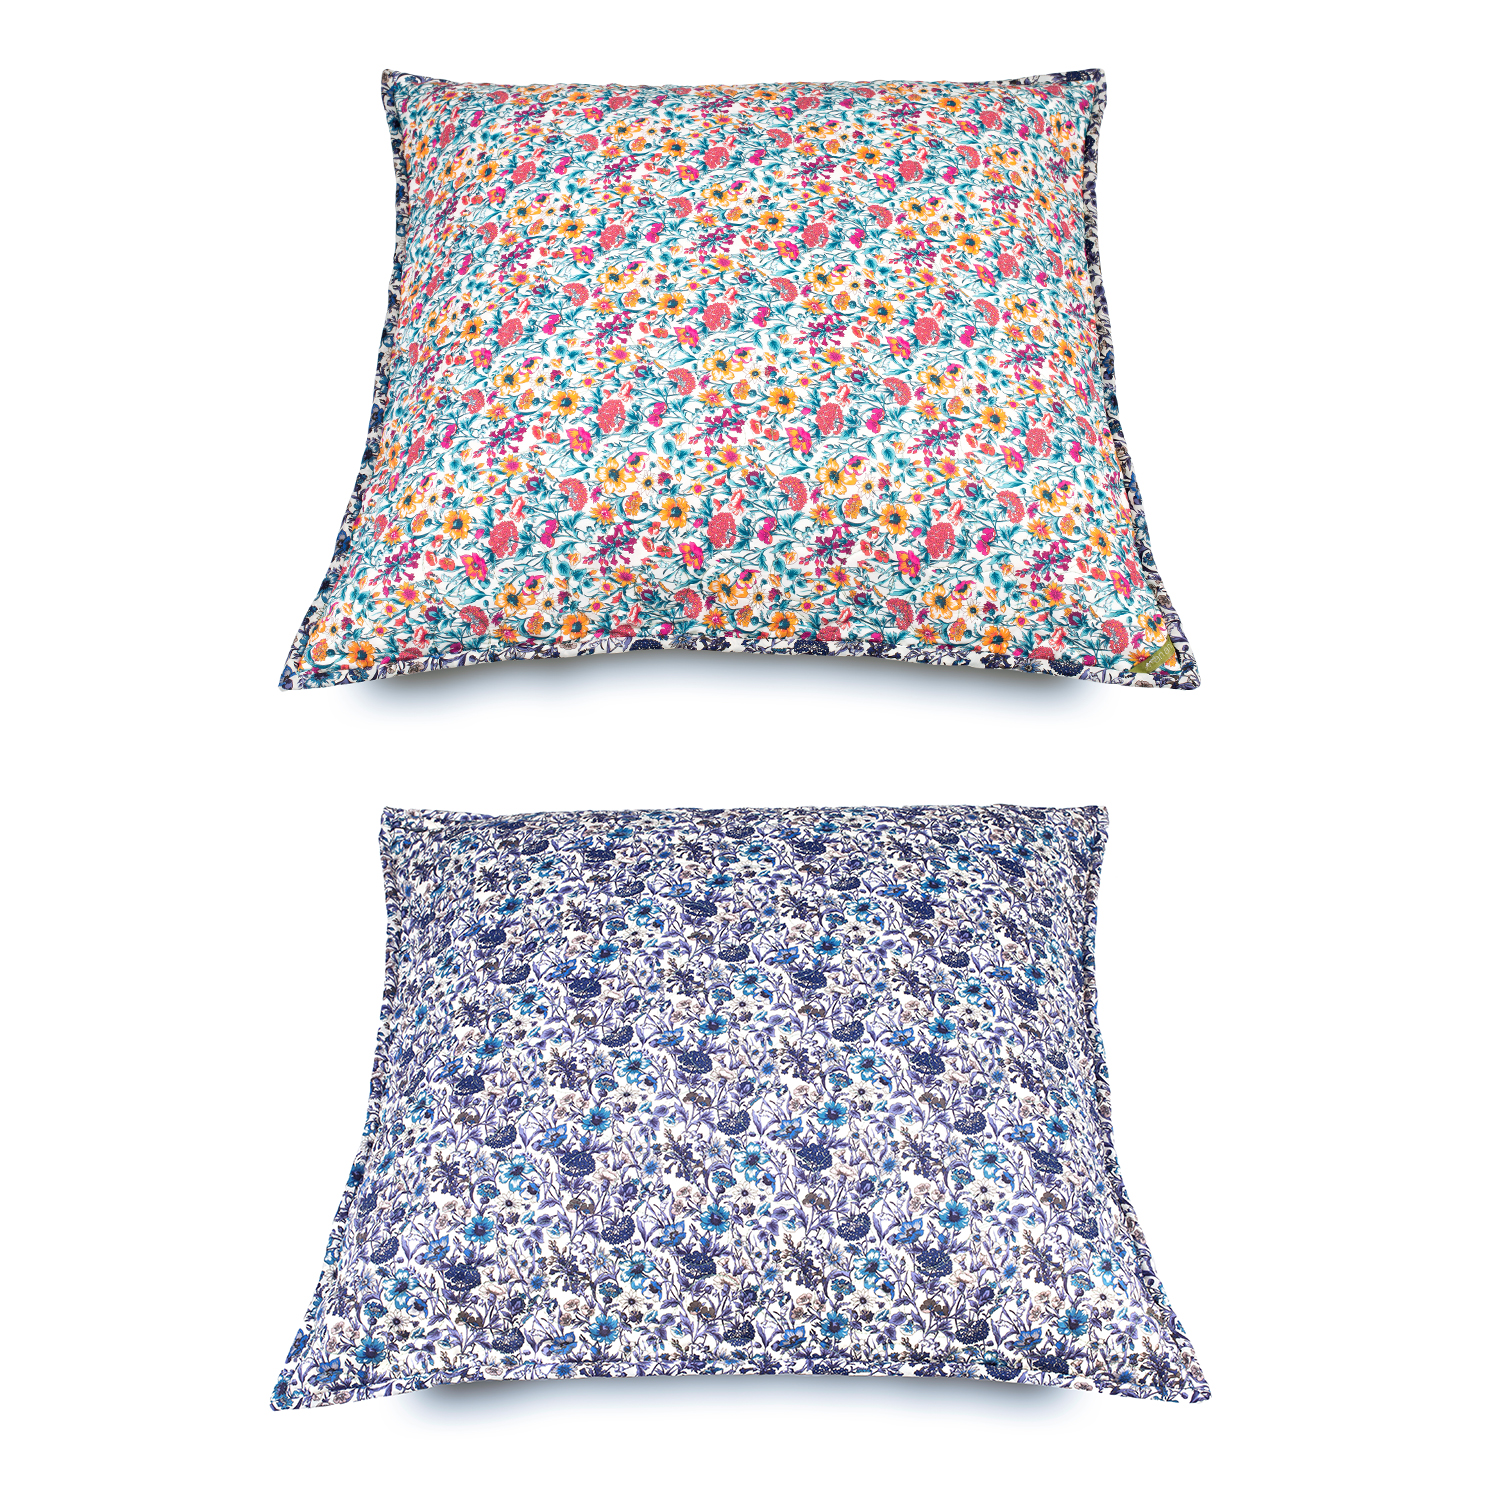 2 CUSHION Covers Liberty Fabrics Prints STAR 1001,  1 of 40X40cm and 1 of 60X60cm.